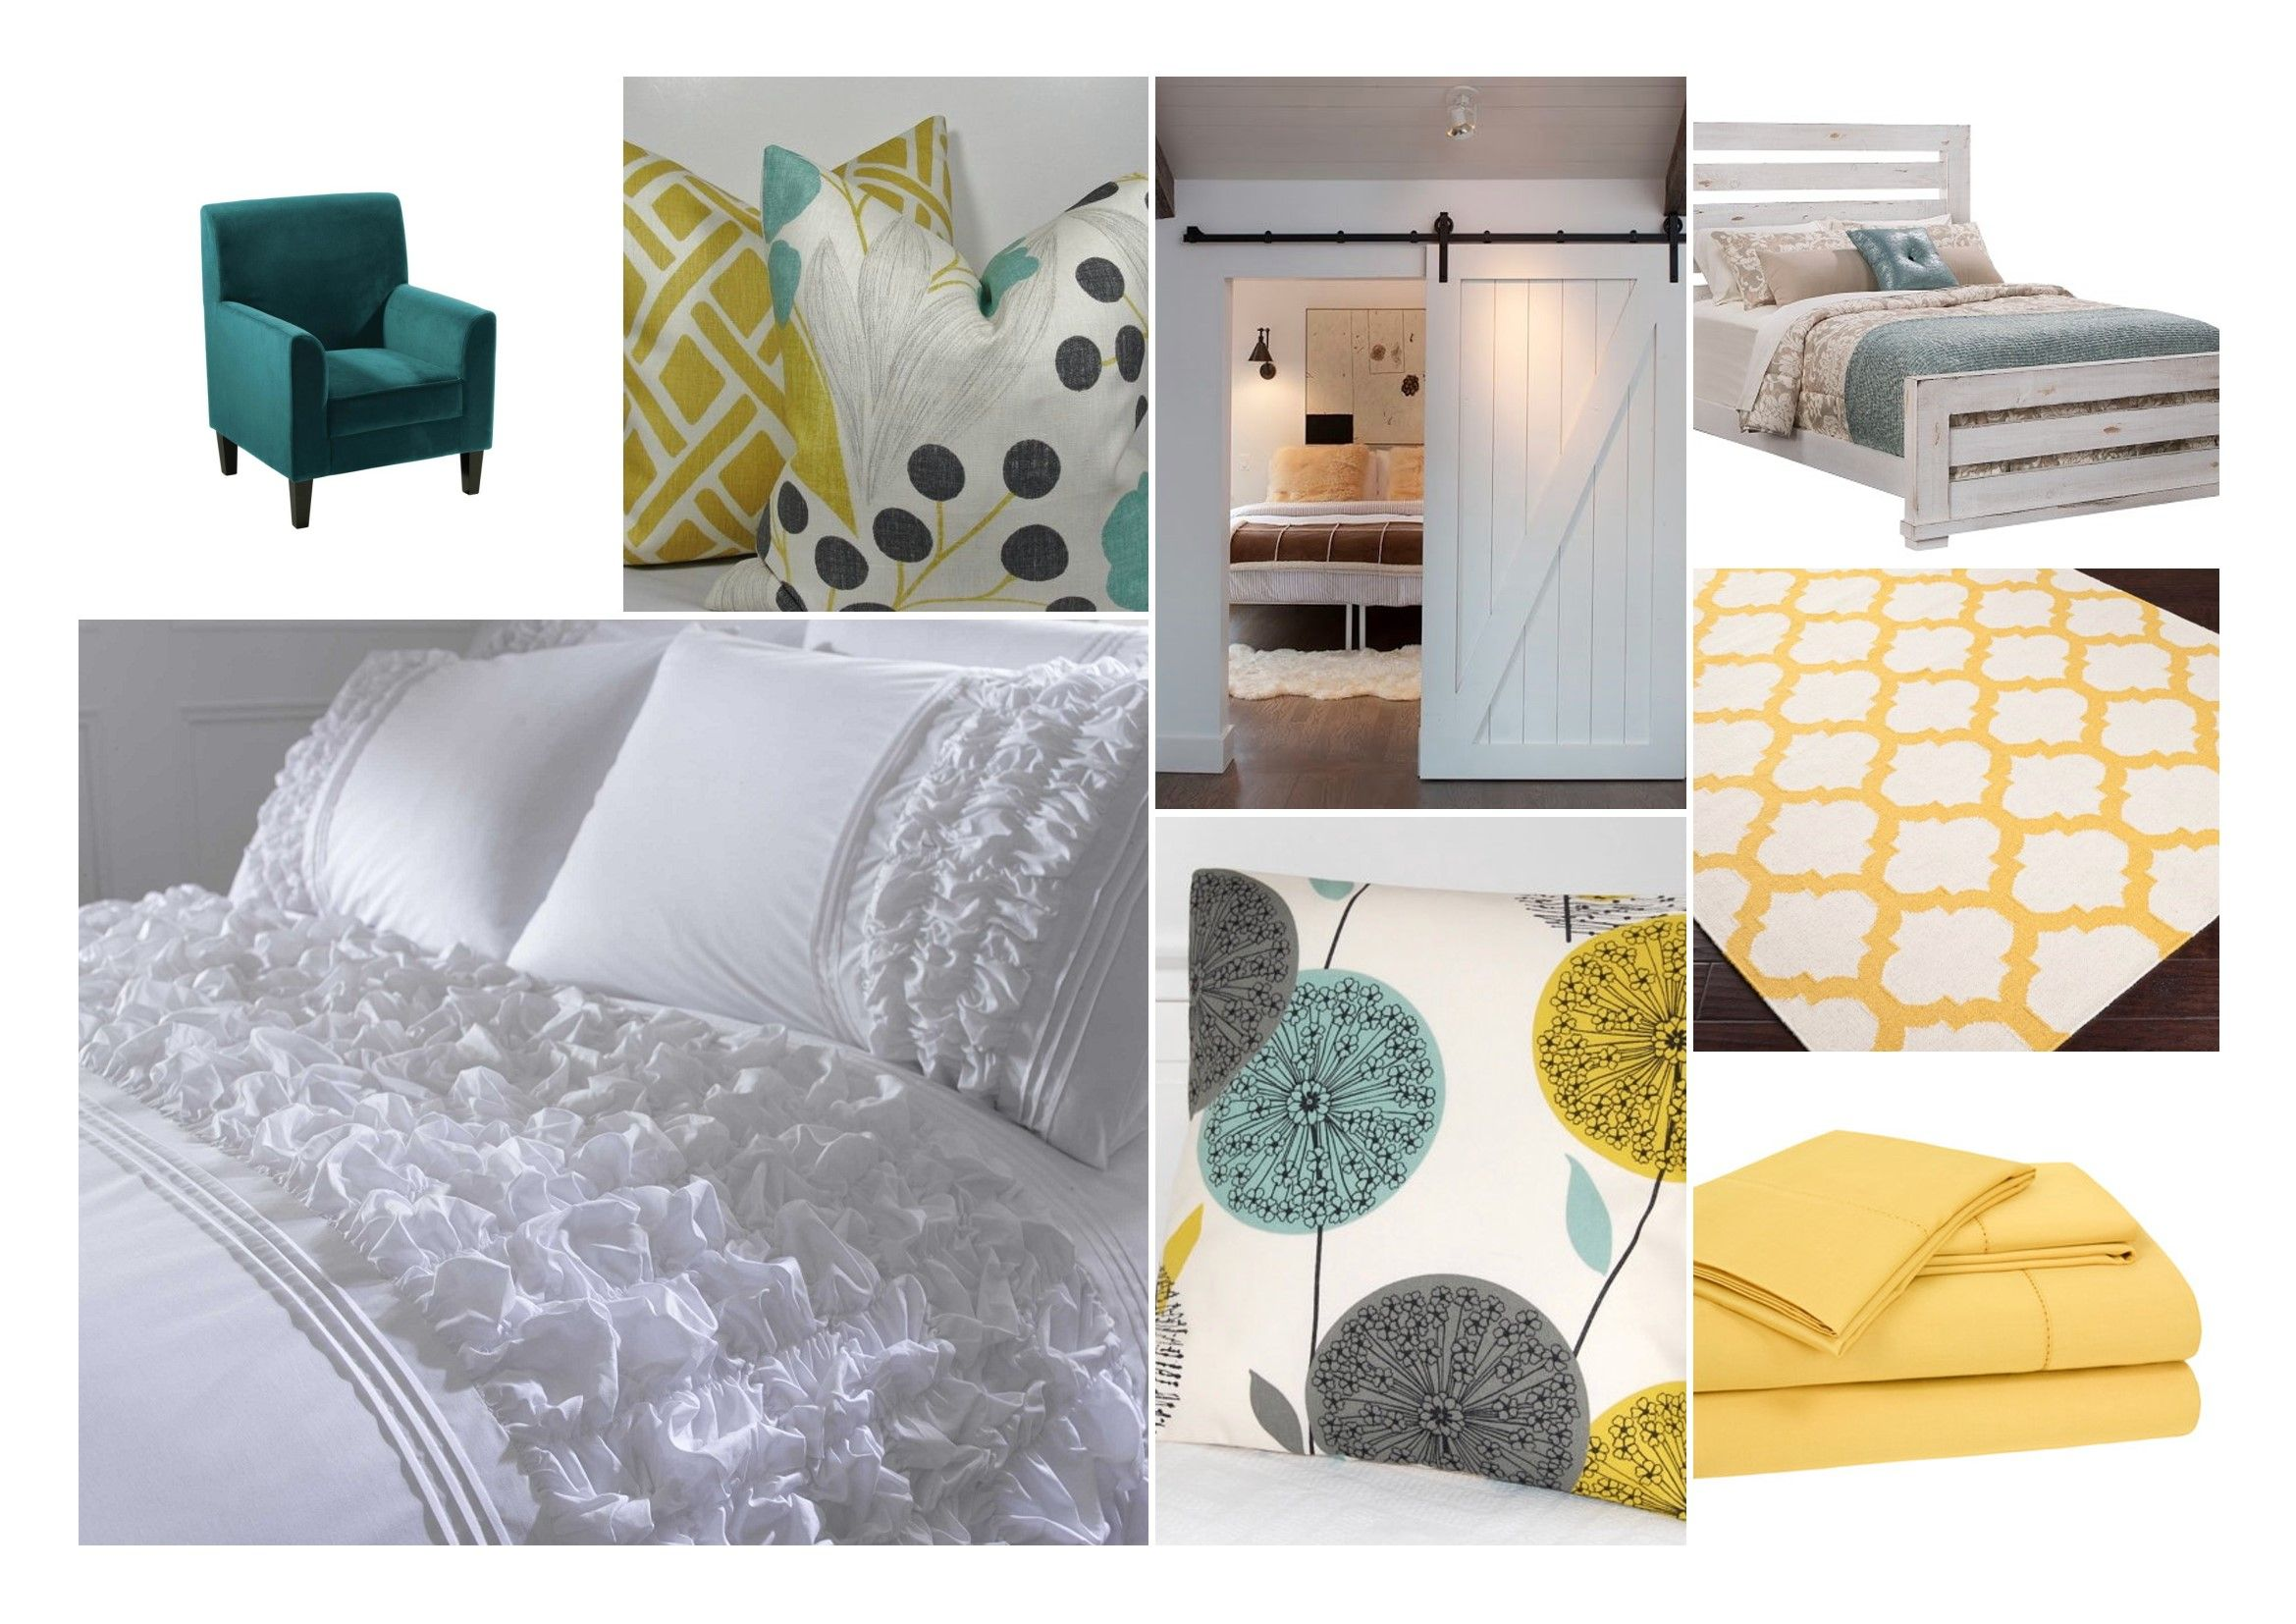 master bedroom yellow grey teal clean white bedding yellow sheets teal accents decor. Black Bedroom Furniture Sets. Home Design Ideas